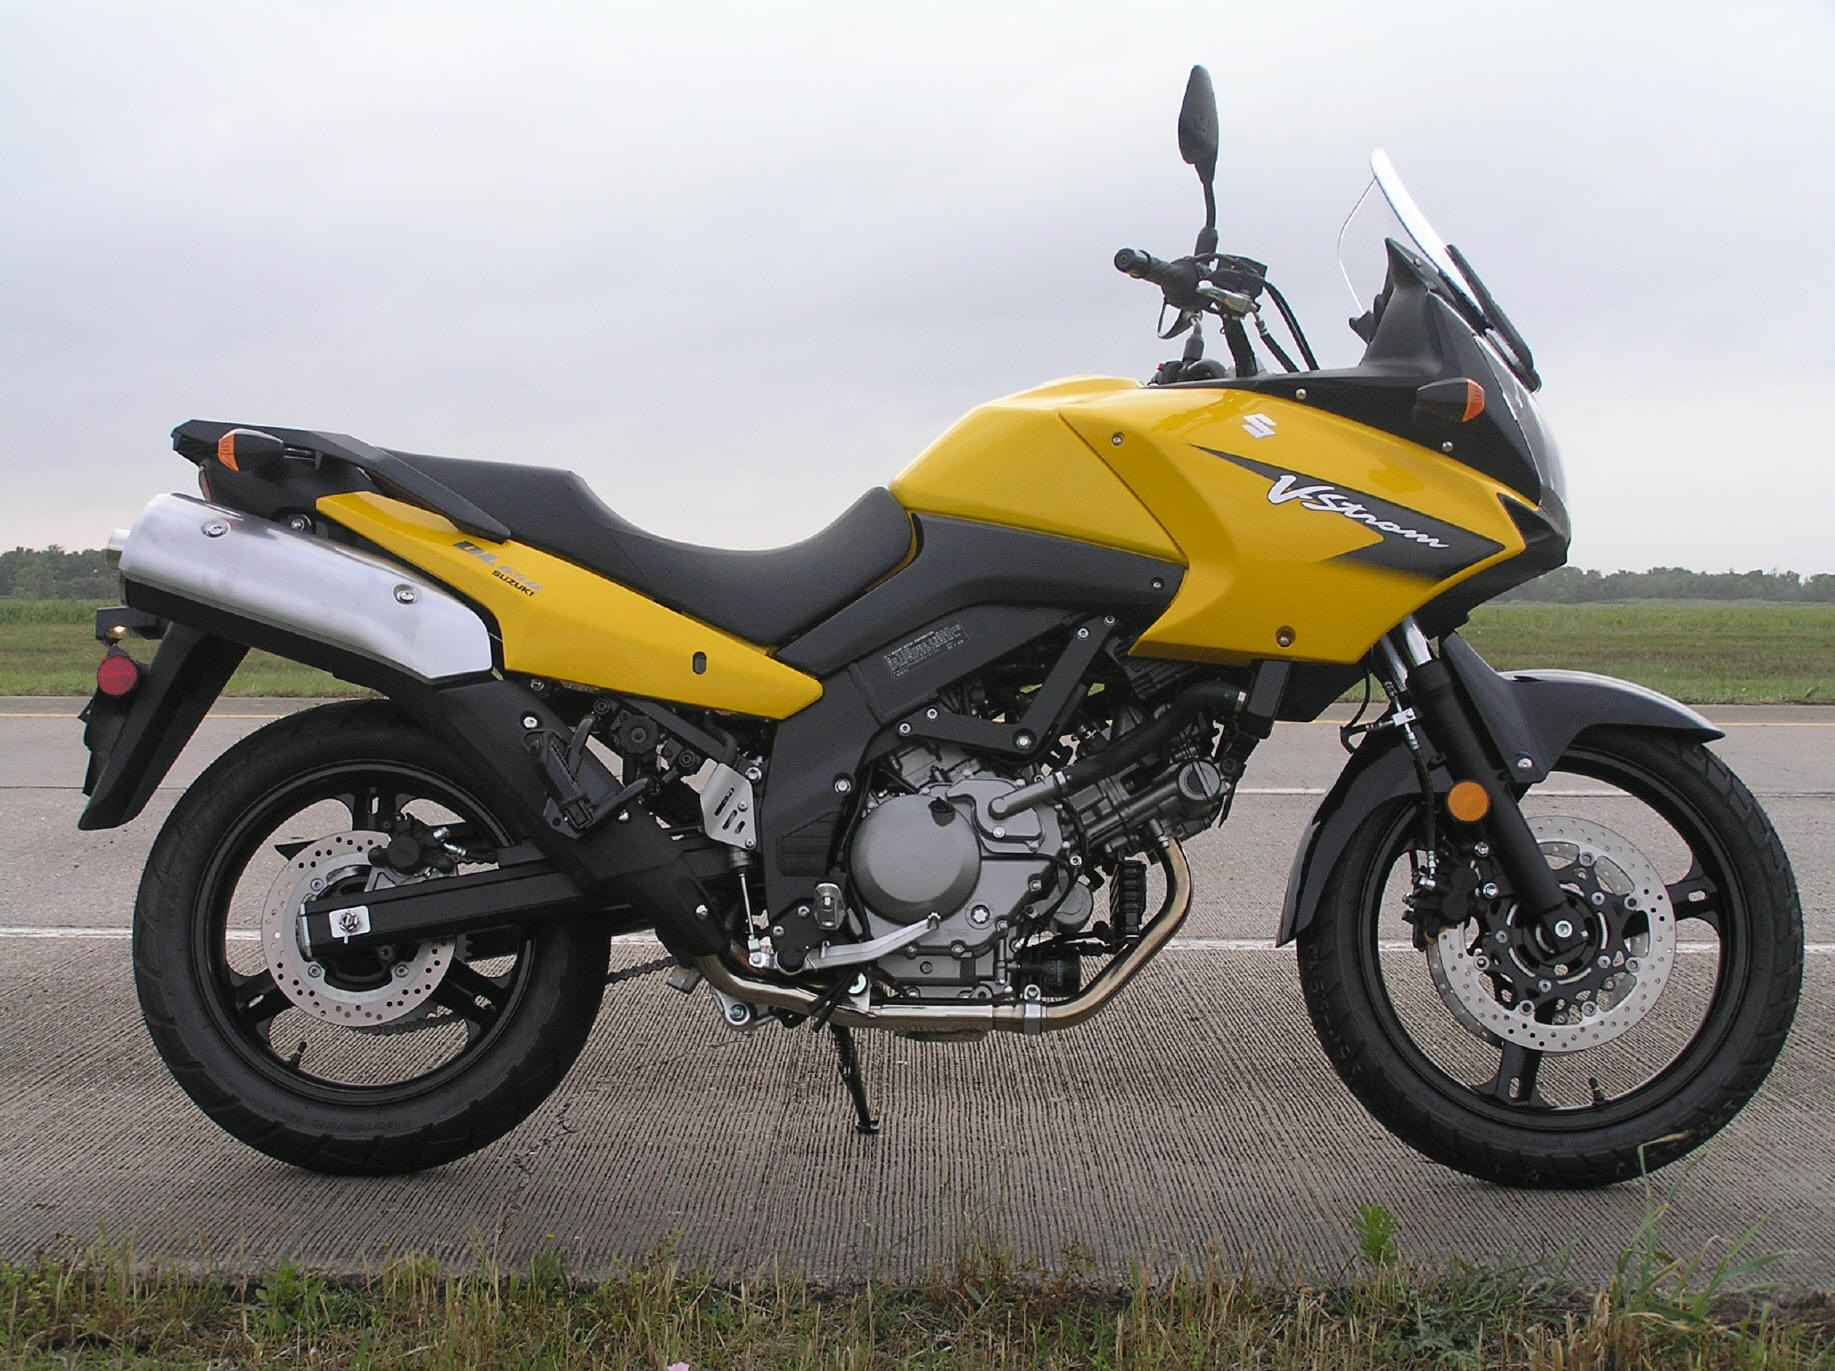 hight resolution of there is really no way to describe the emotional feelings that a brand new motorcycle can evoke it s really sweet man my girlfriend probably summed it up